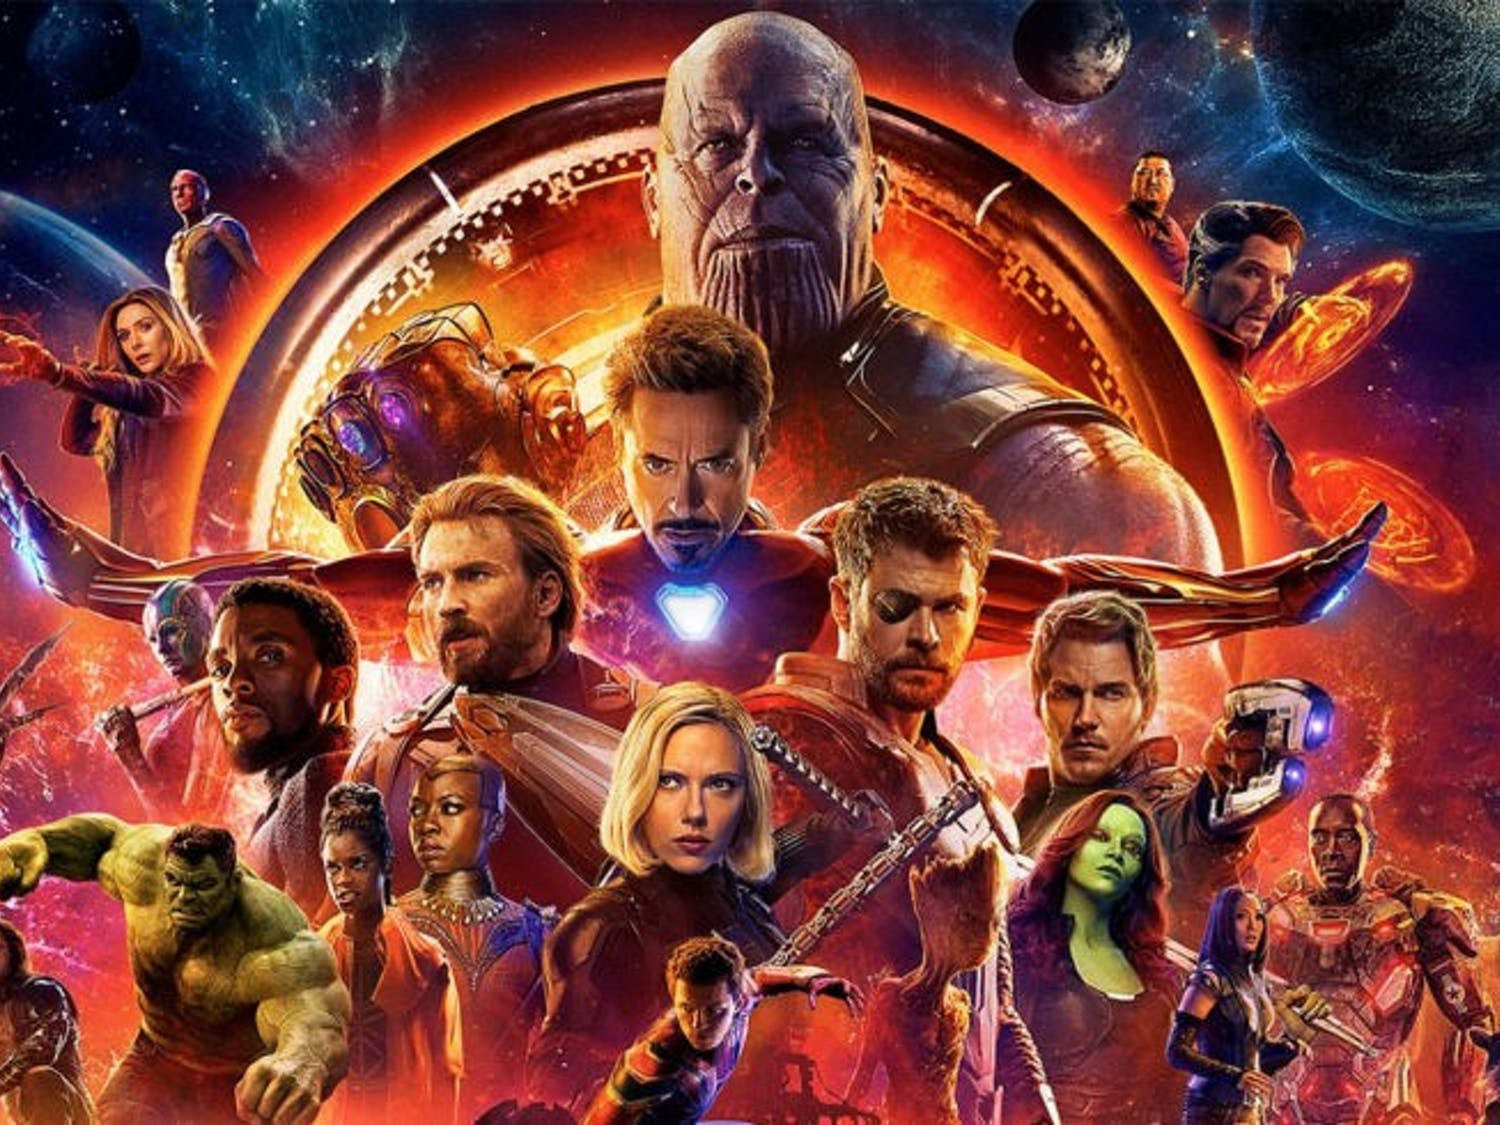 """While newer fans may not necessarily understand the inside jokes and complex relationships of the characters in""""Avengers: Infinity War,""""they can still appreciate the film's impressive action sequences and charismatic villain."""